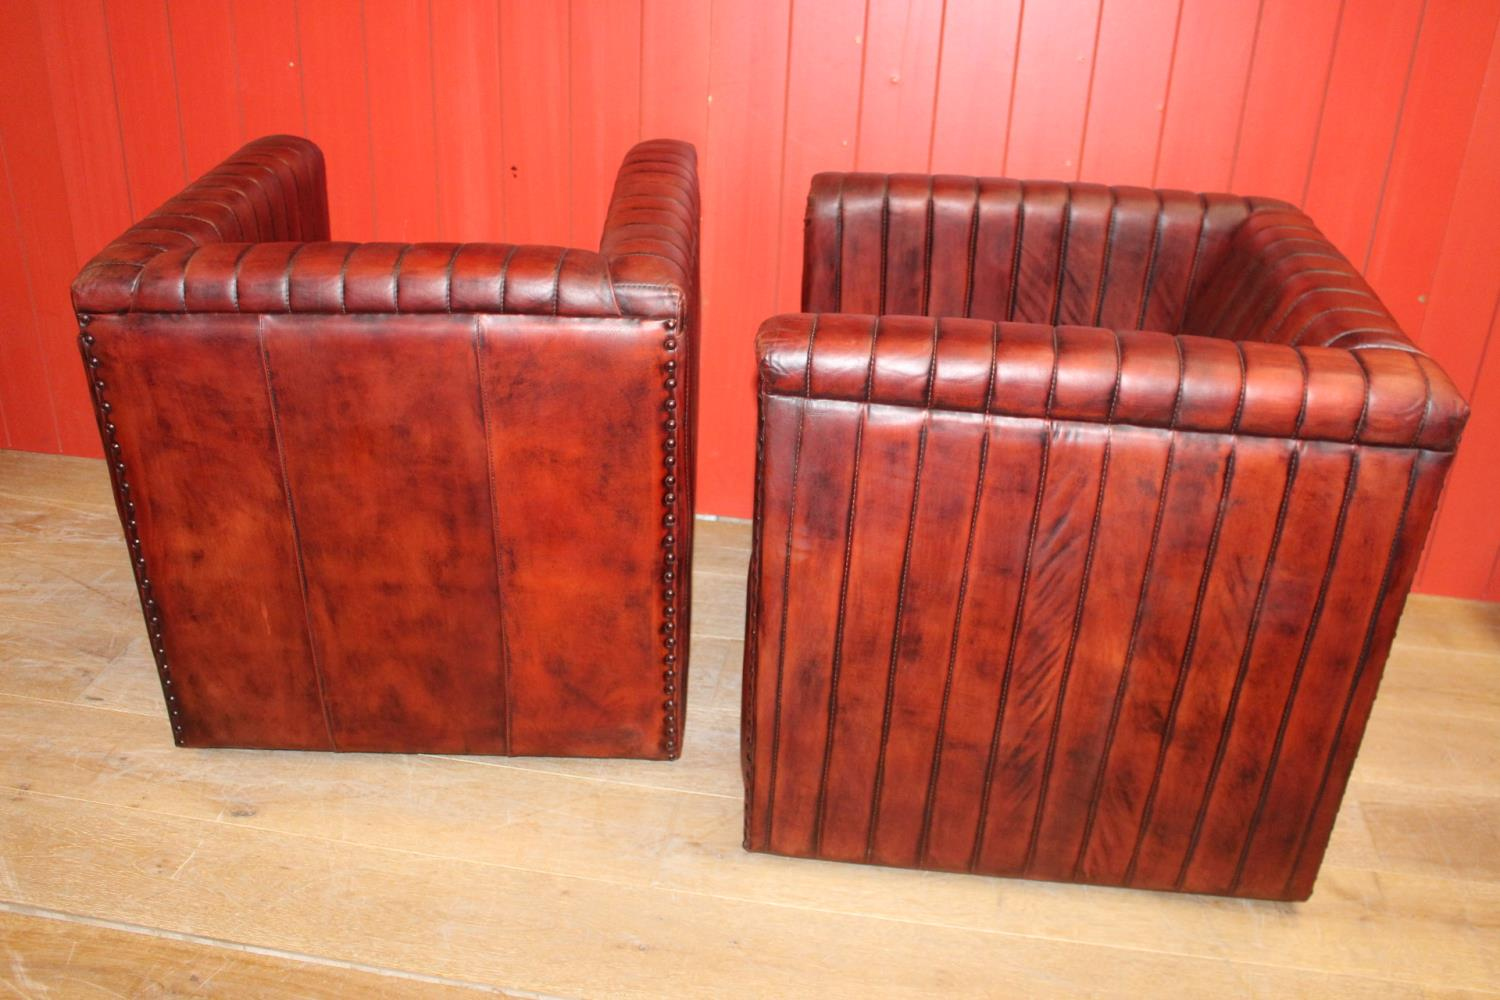 Pair of leather upholstered club chairs - Image 2 of 2